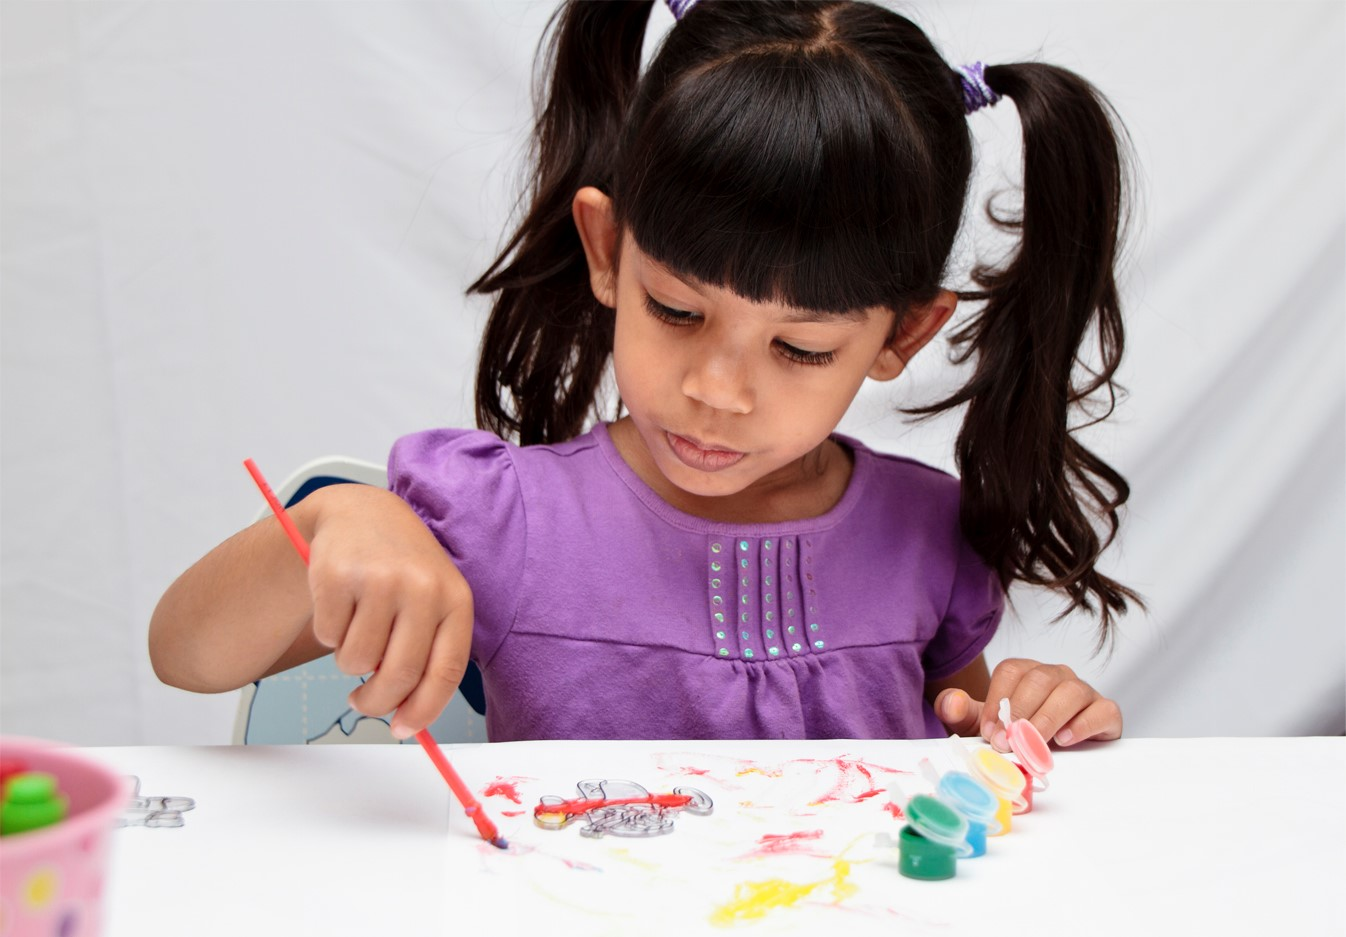 preschool_girl_painting_small.jpg